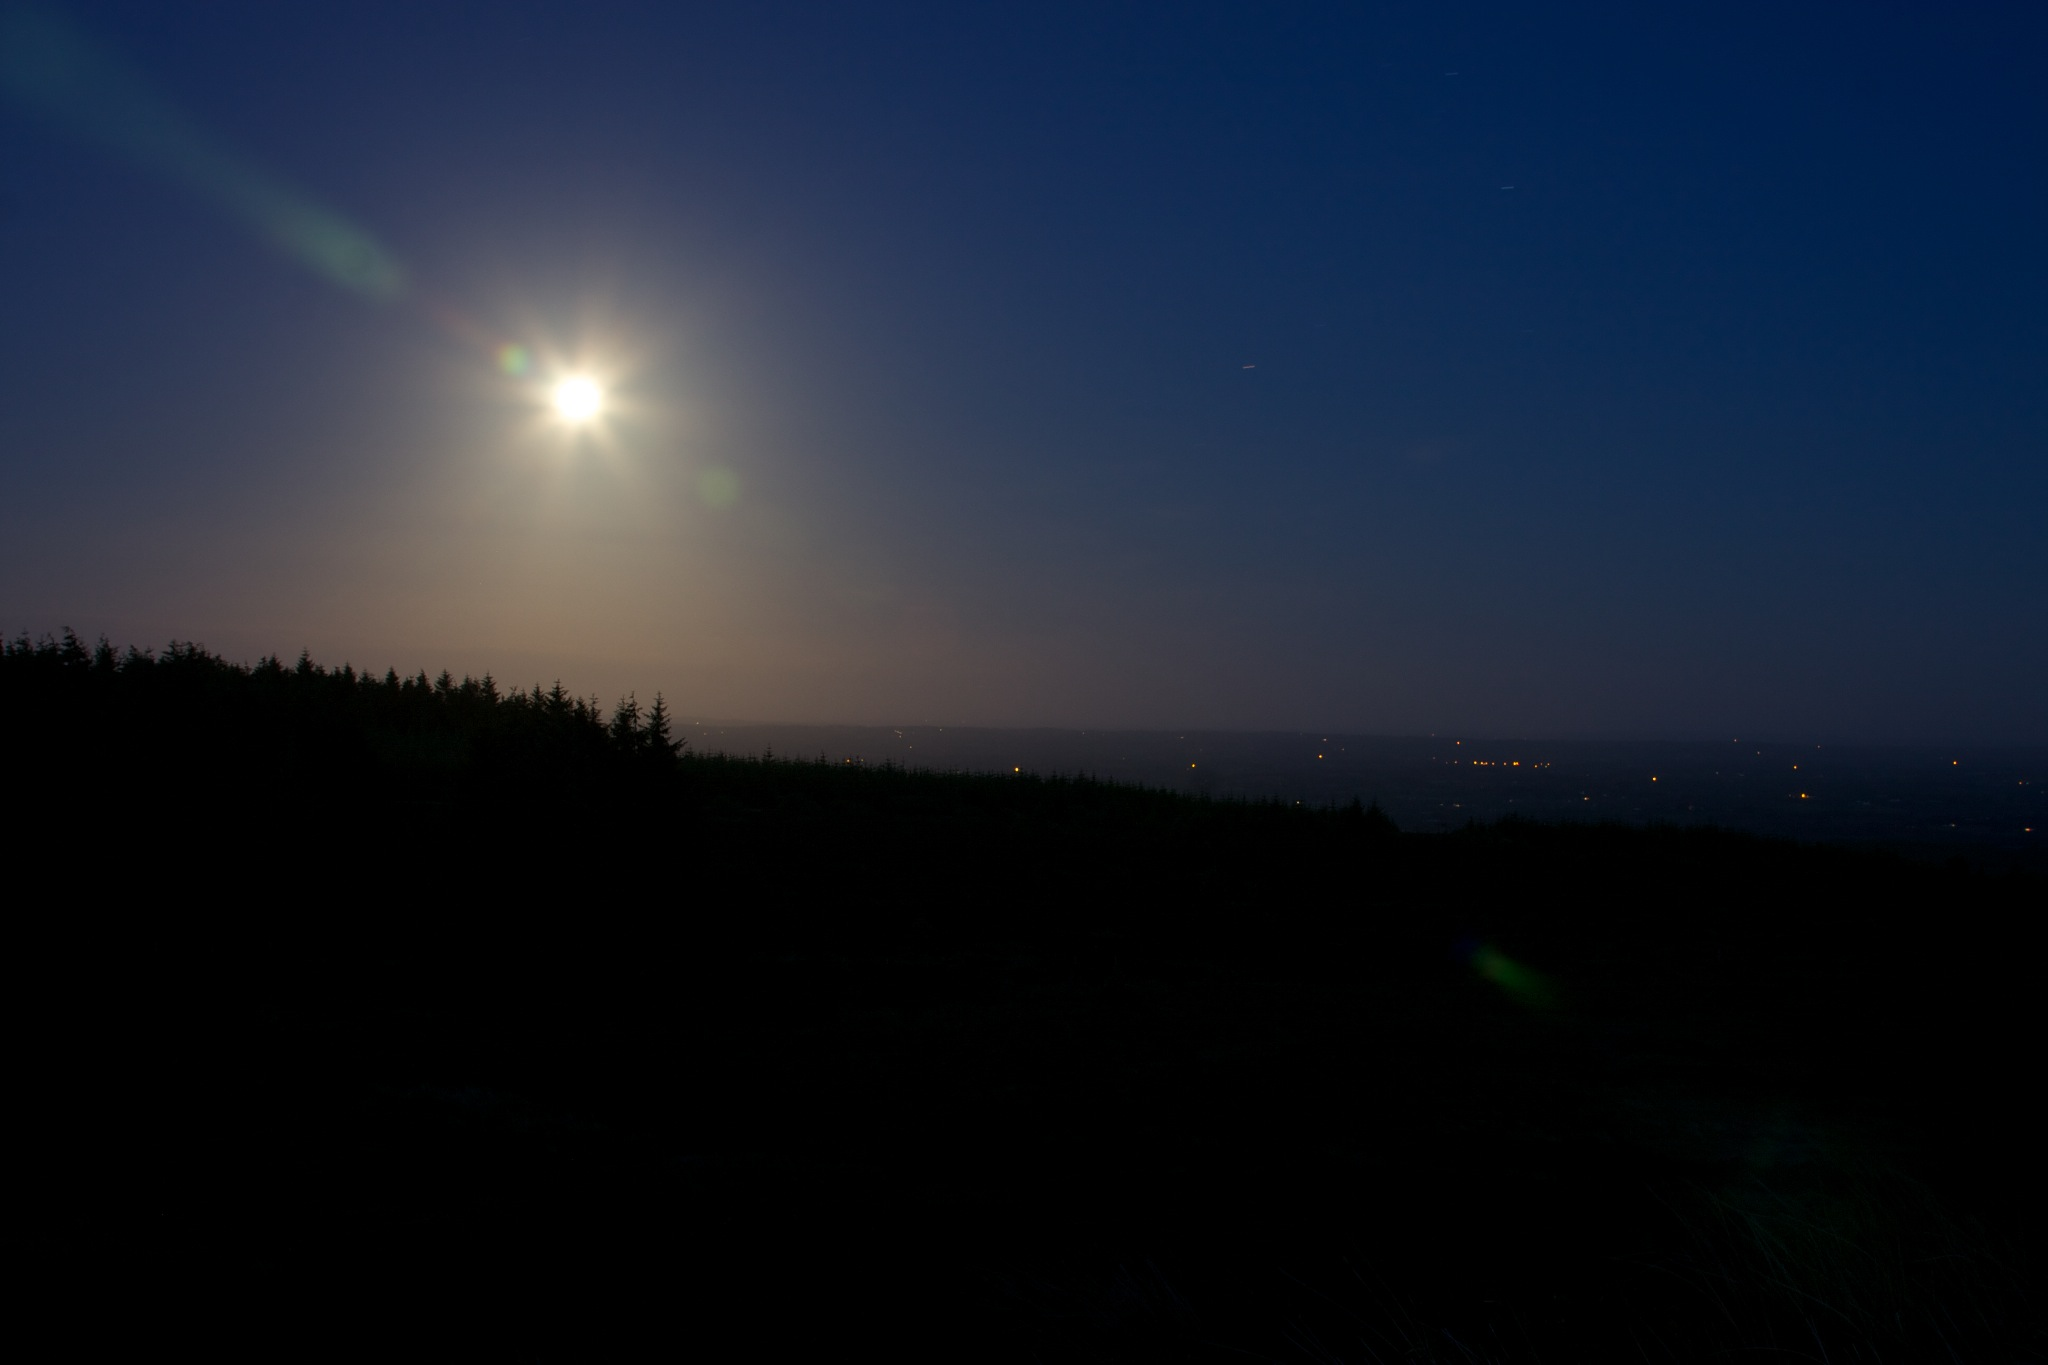 Bright hazy glow of the moon with the lights Monaghan town in the distance